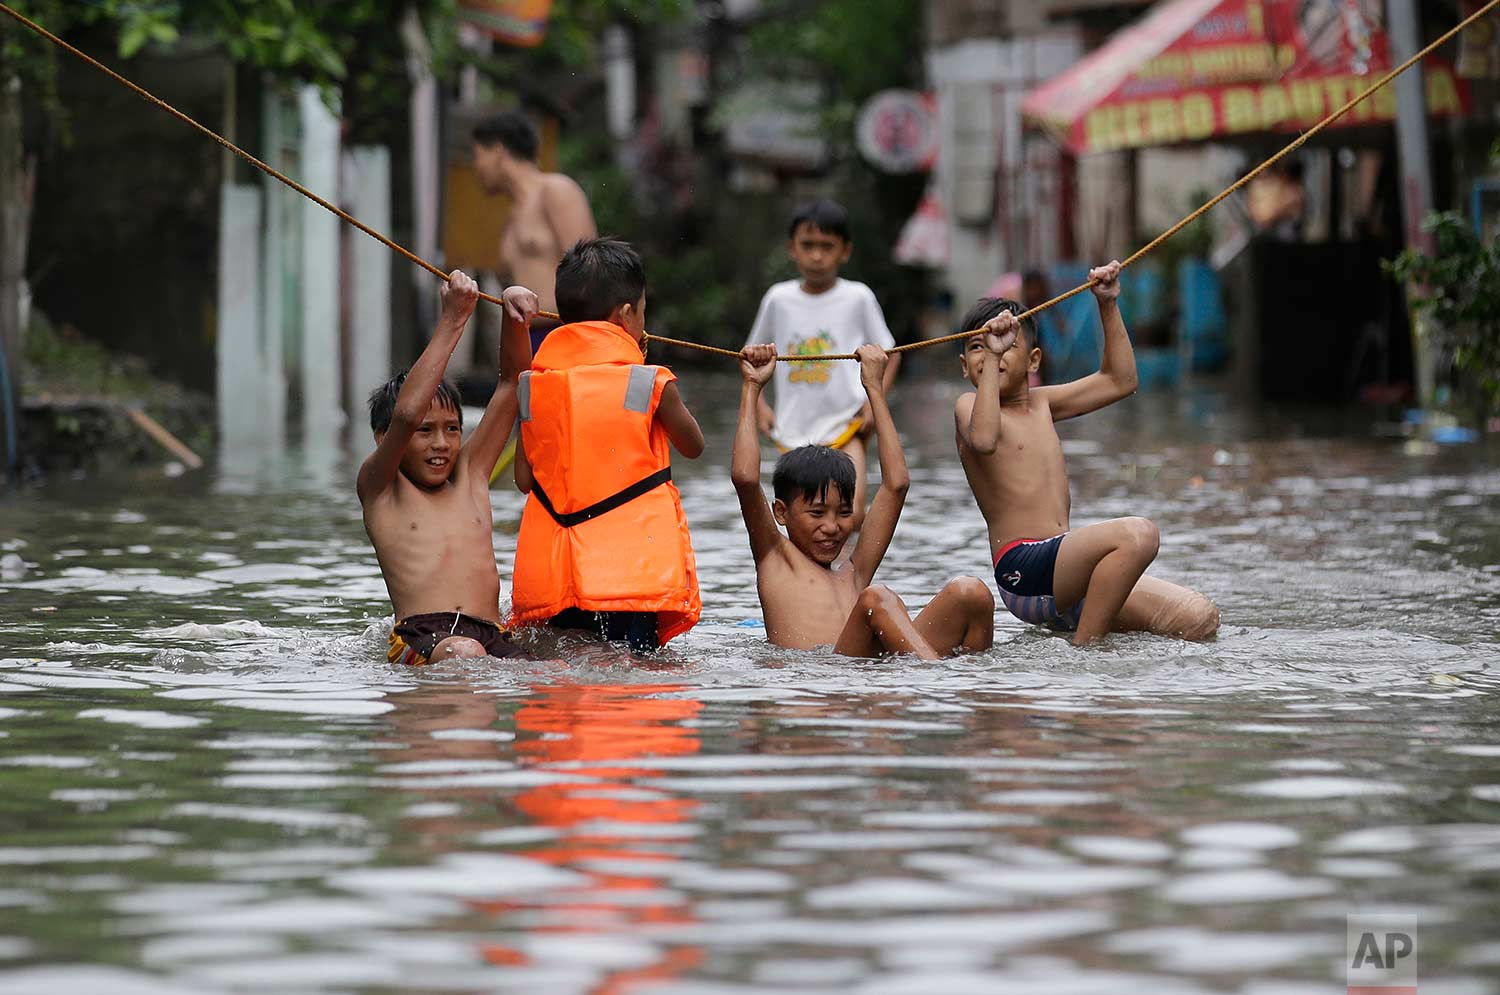 Boys play outside their flooded homes after heavy rains from tropical storm Gorio flooded parts of metropolitan Manila, Philippines on Thursday, July 27, 2017.  (AP Photo/Aaron Favila)